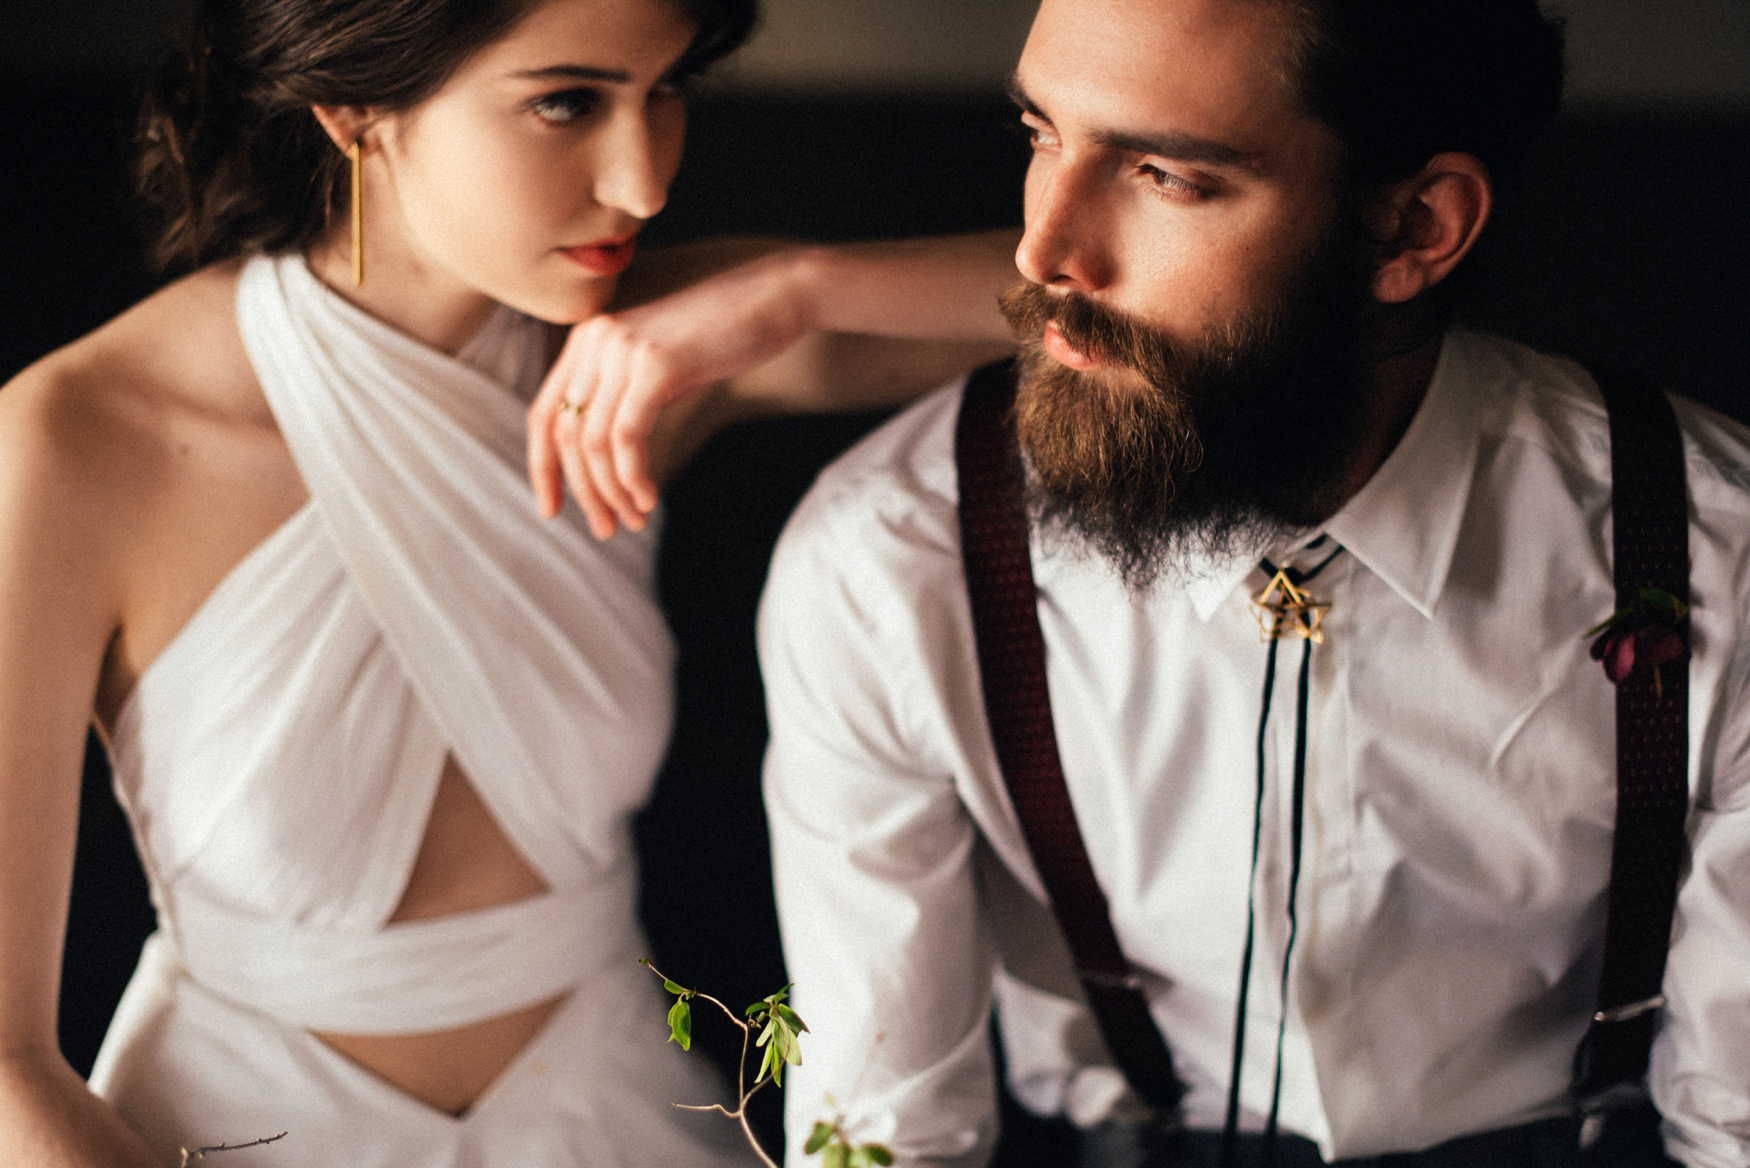 1 art deco inspired urban wedding editorial 031.jpg